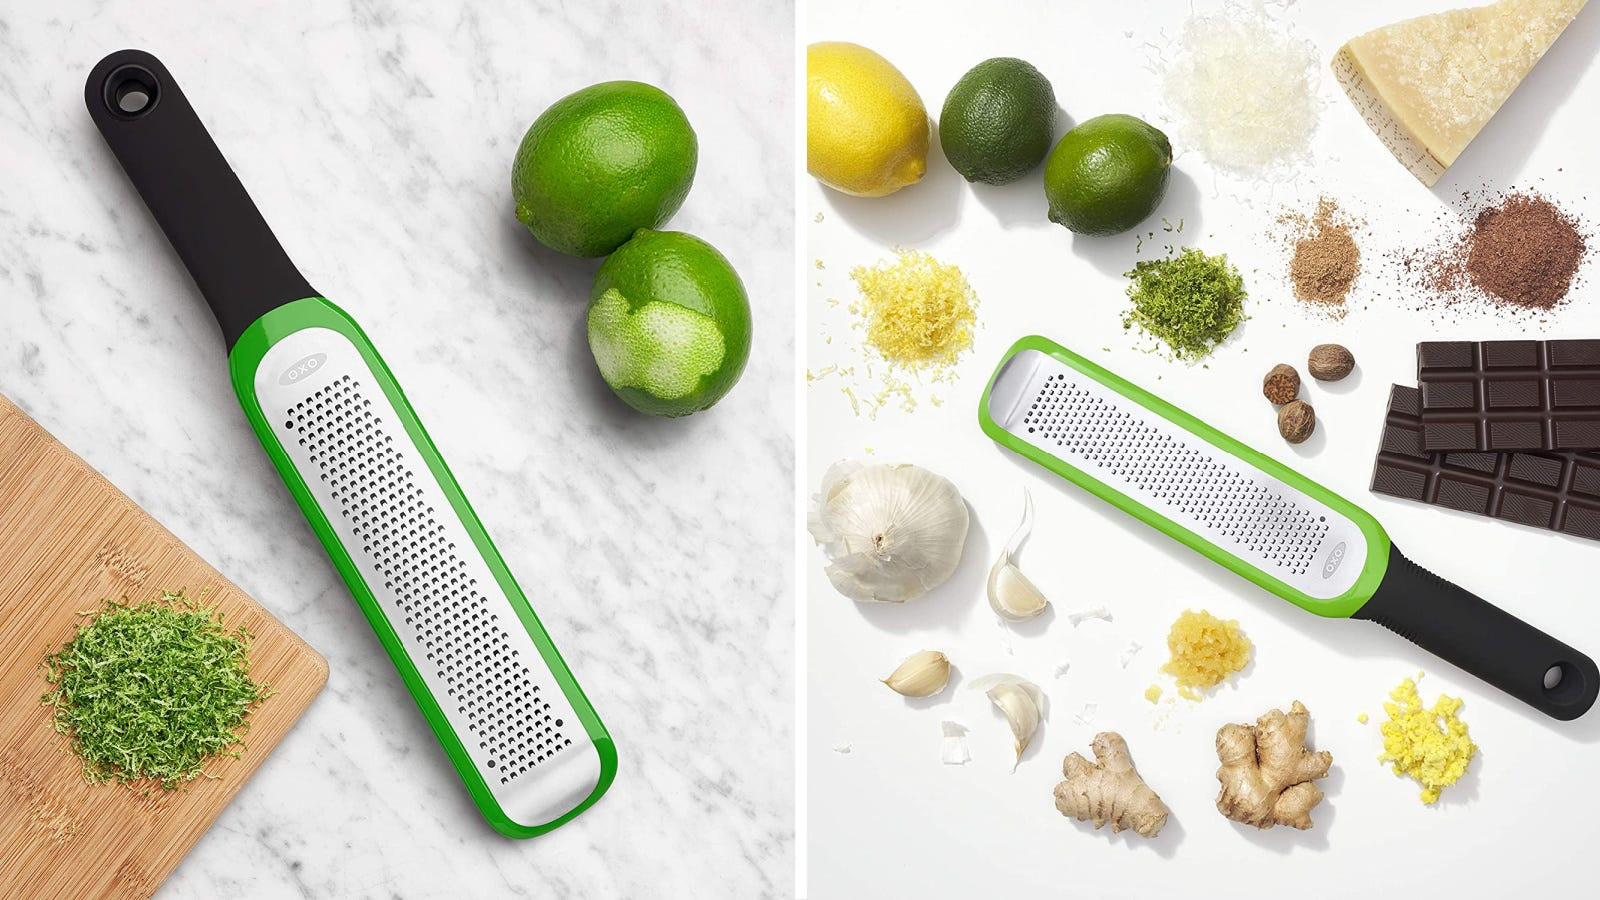 Two images of an OXO Microplane, demonstrating what the tool can do including zest lemons, cheese, chocolate, garlic and more.